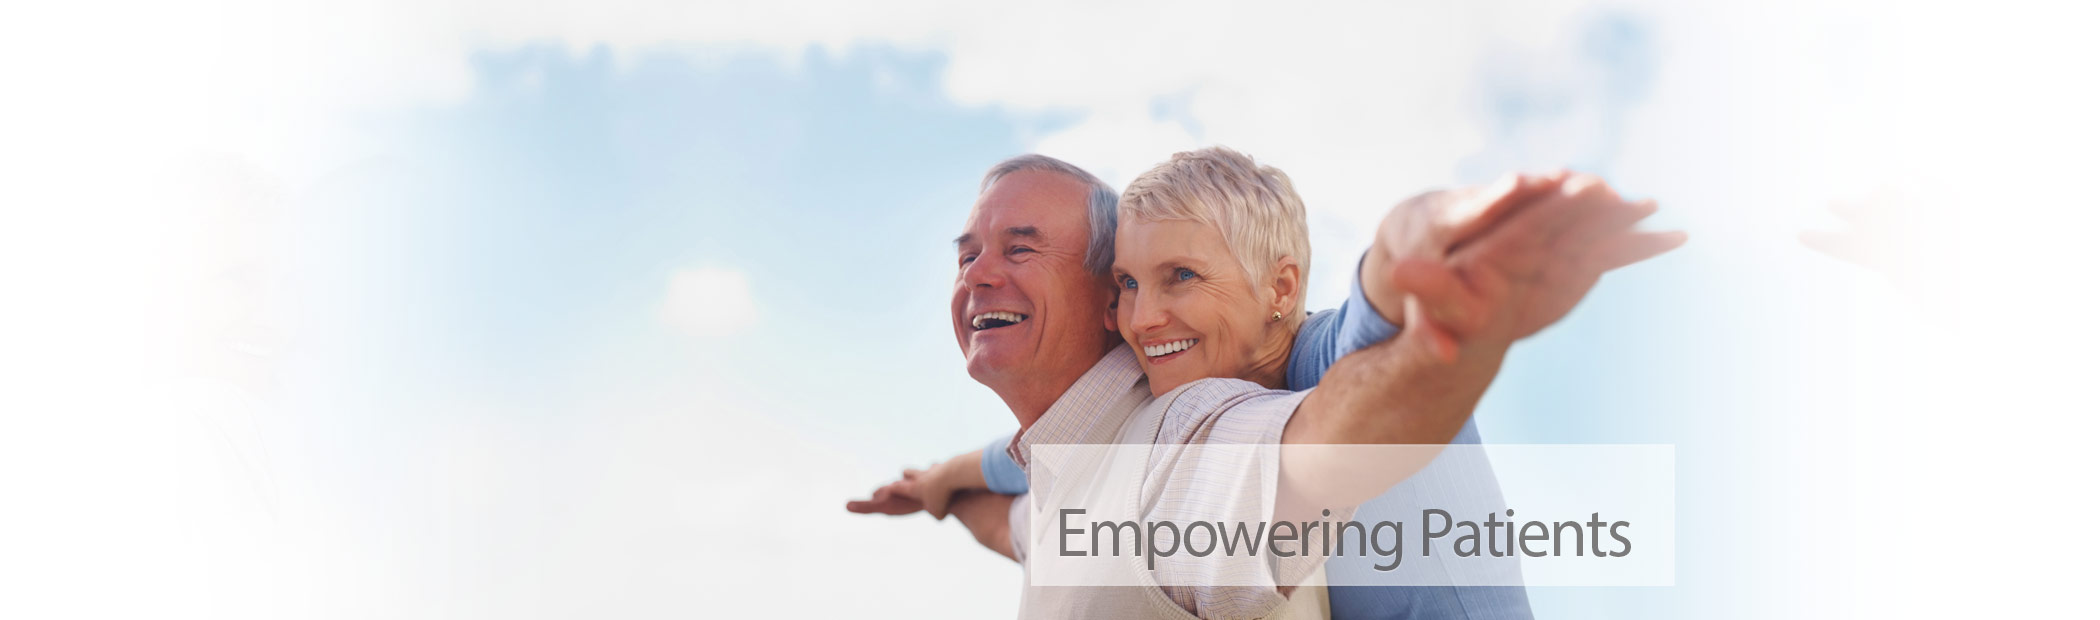 Empowering Patients